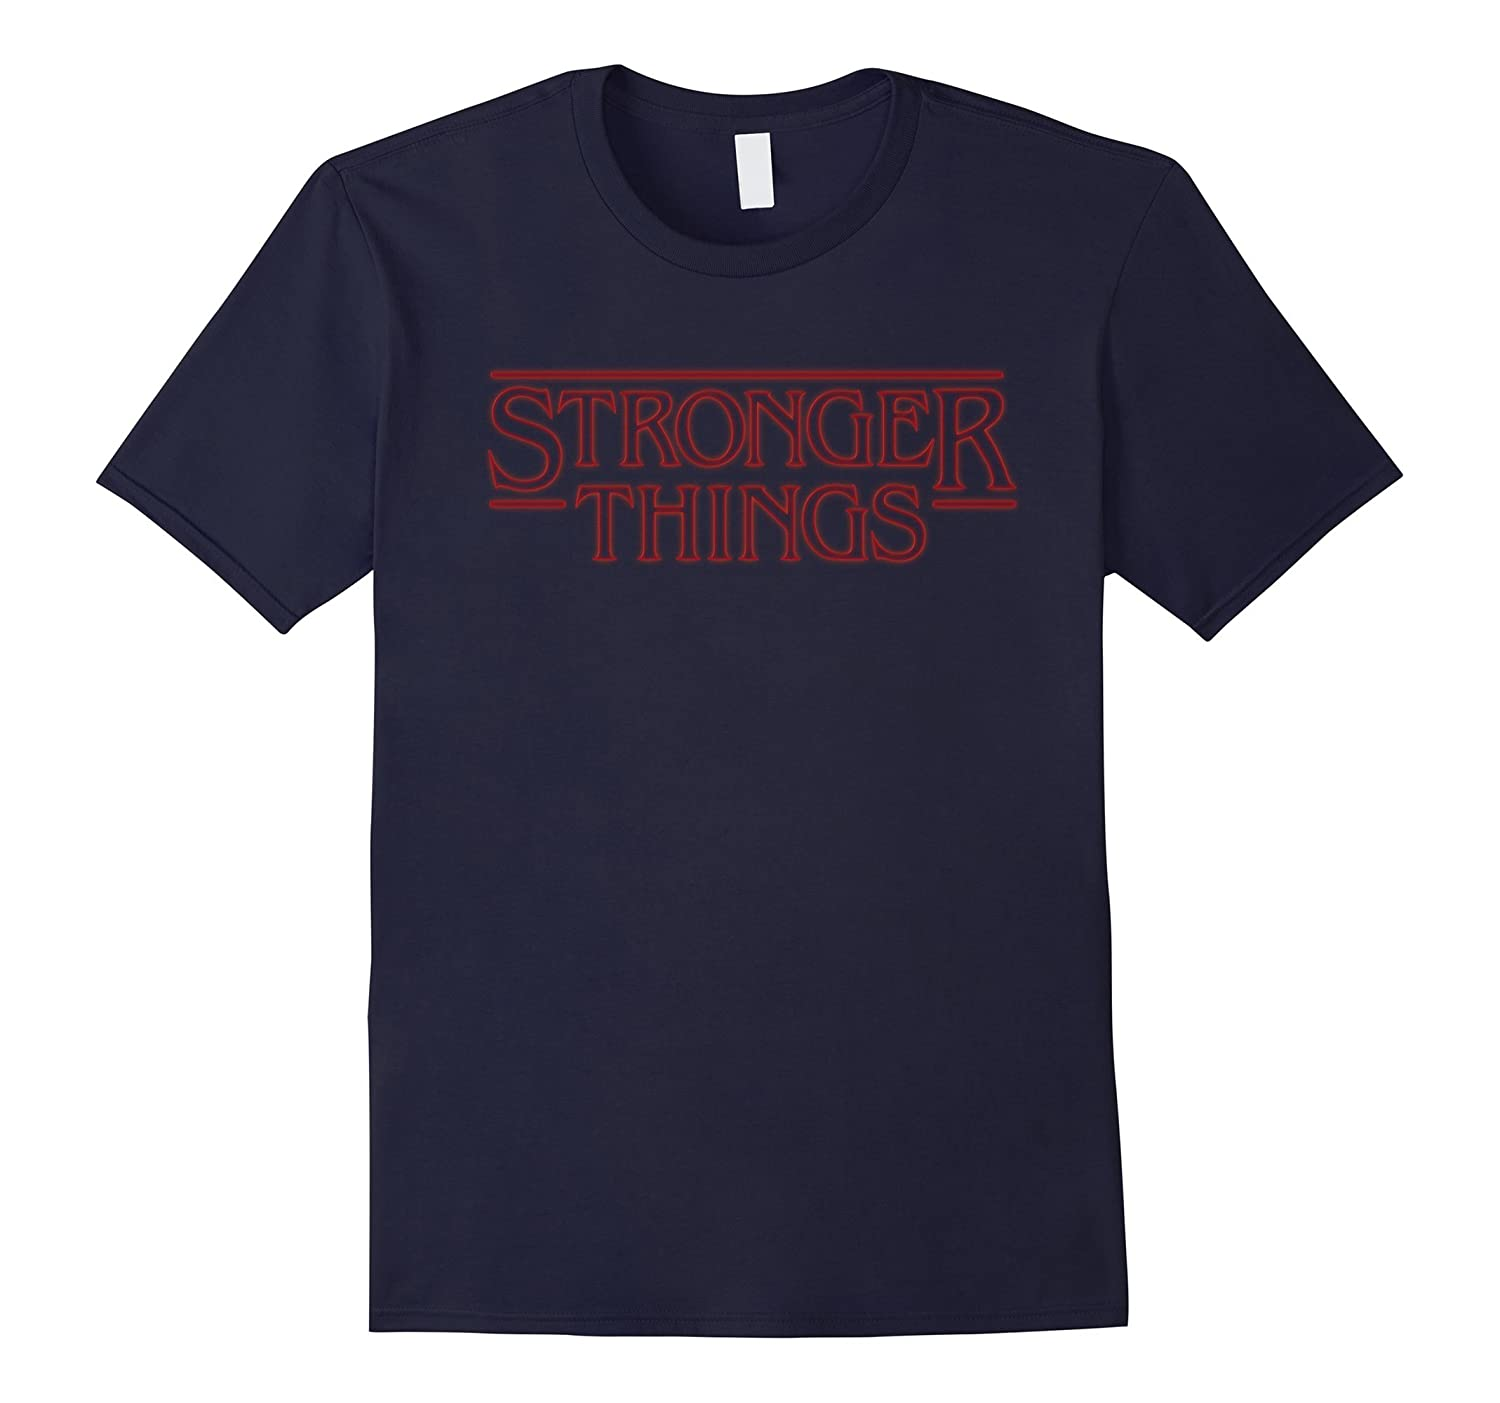 Stronger Things Parody Athletic Fitness Workout Gym T-Shirt-FL